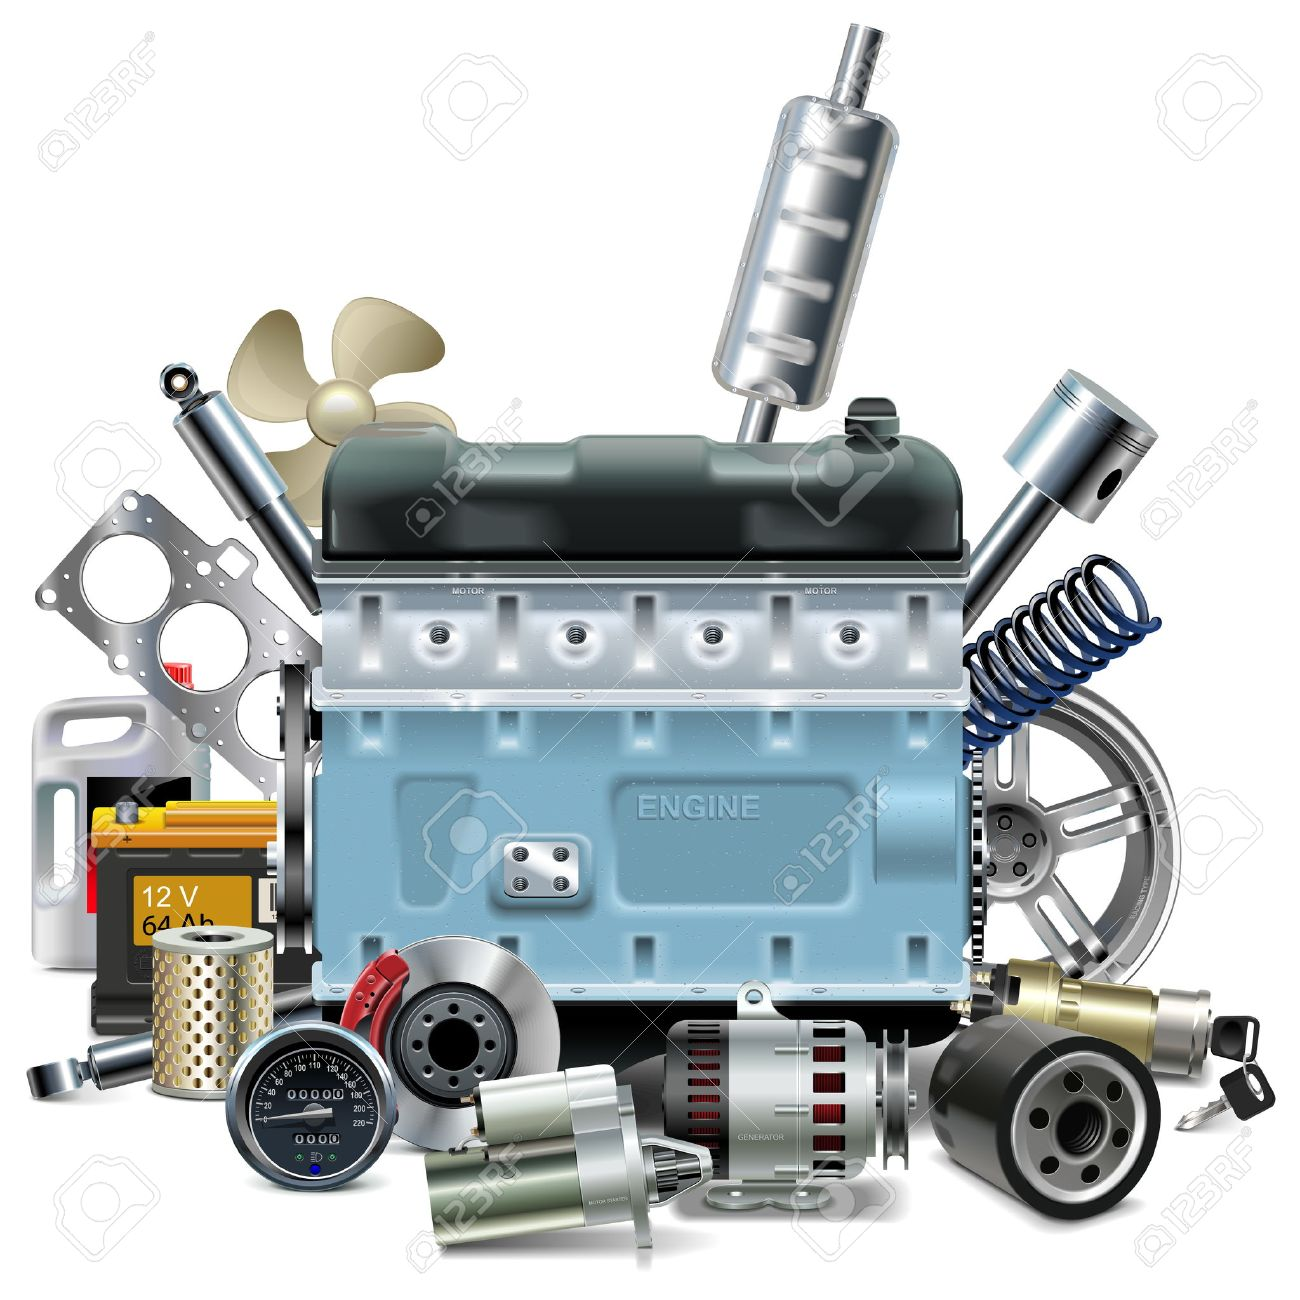 Vector Engine with Car Spares isolated on white background - 46189655